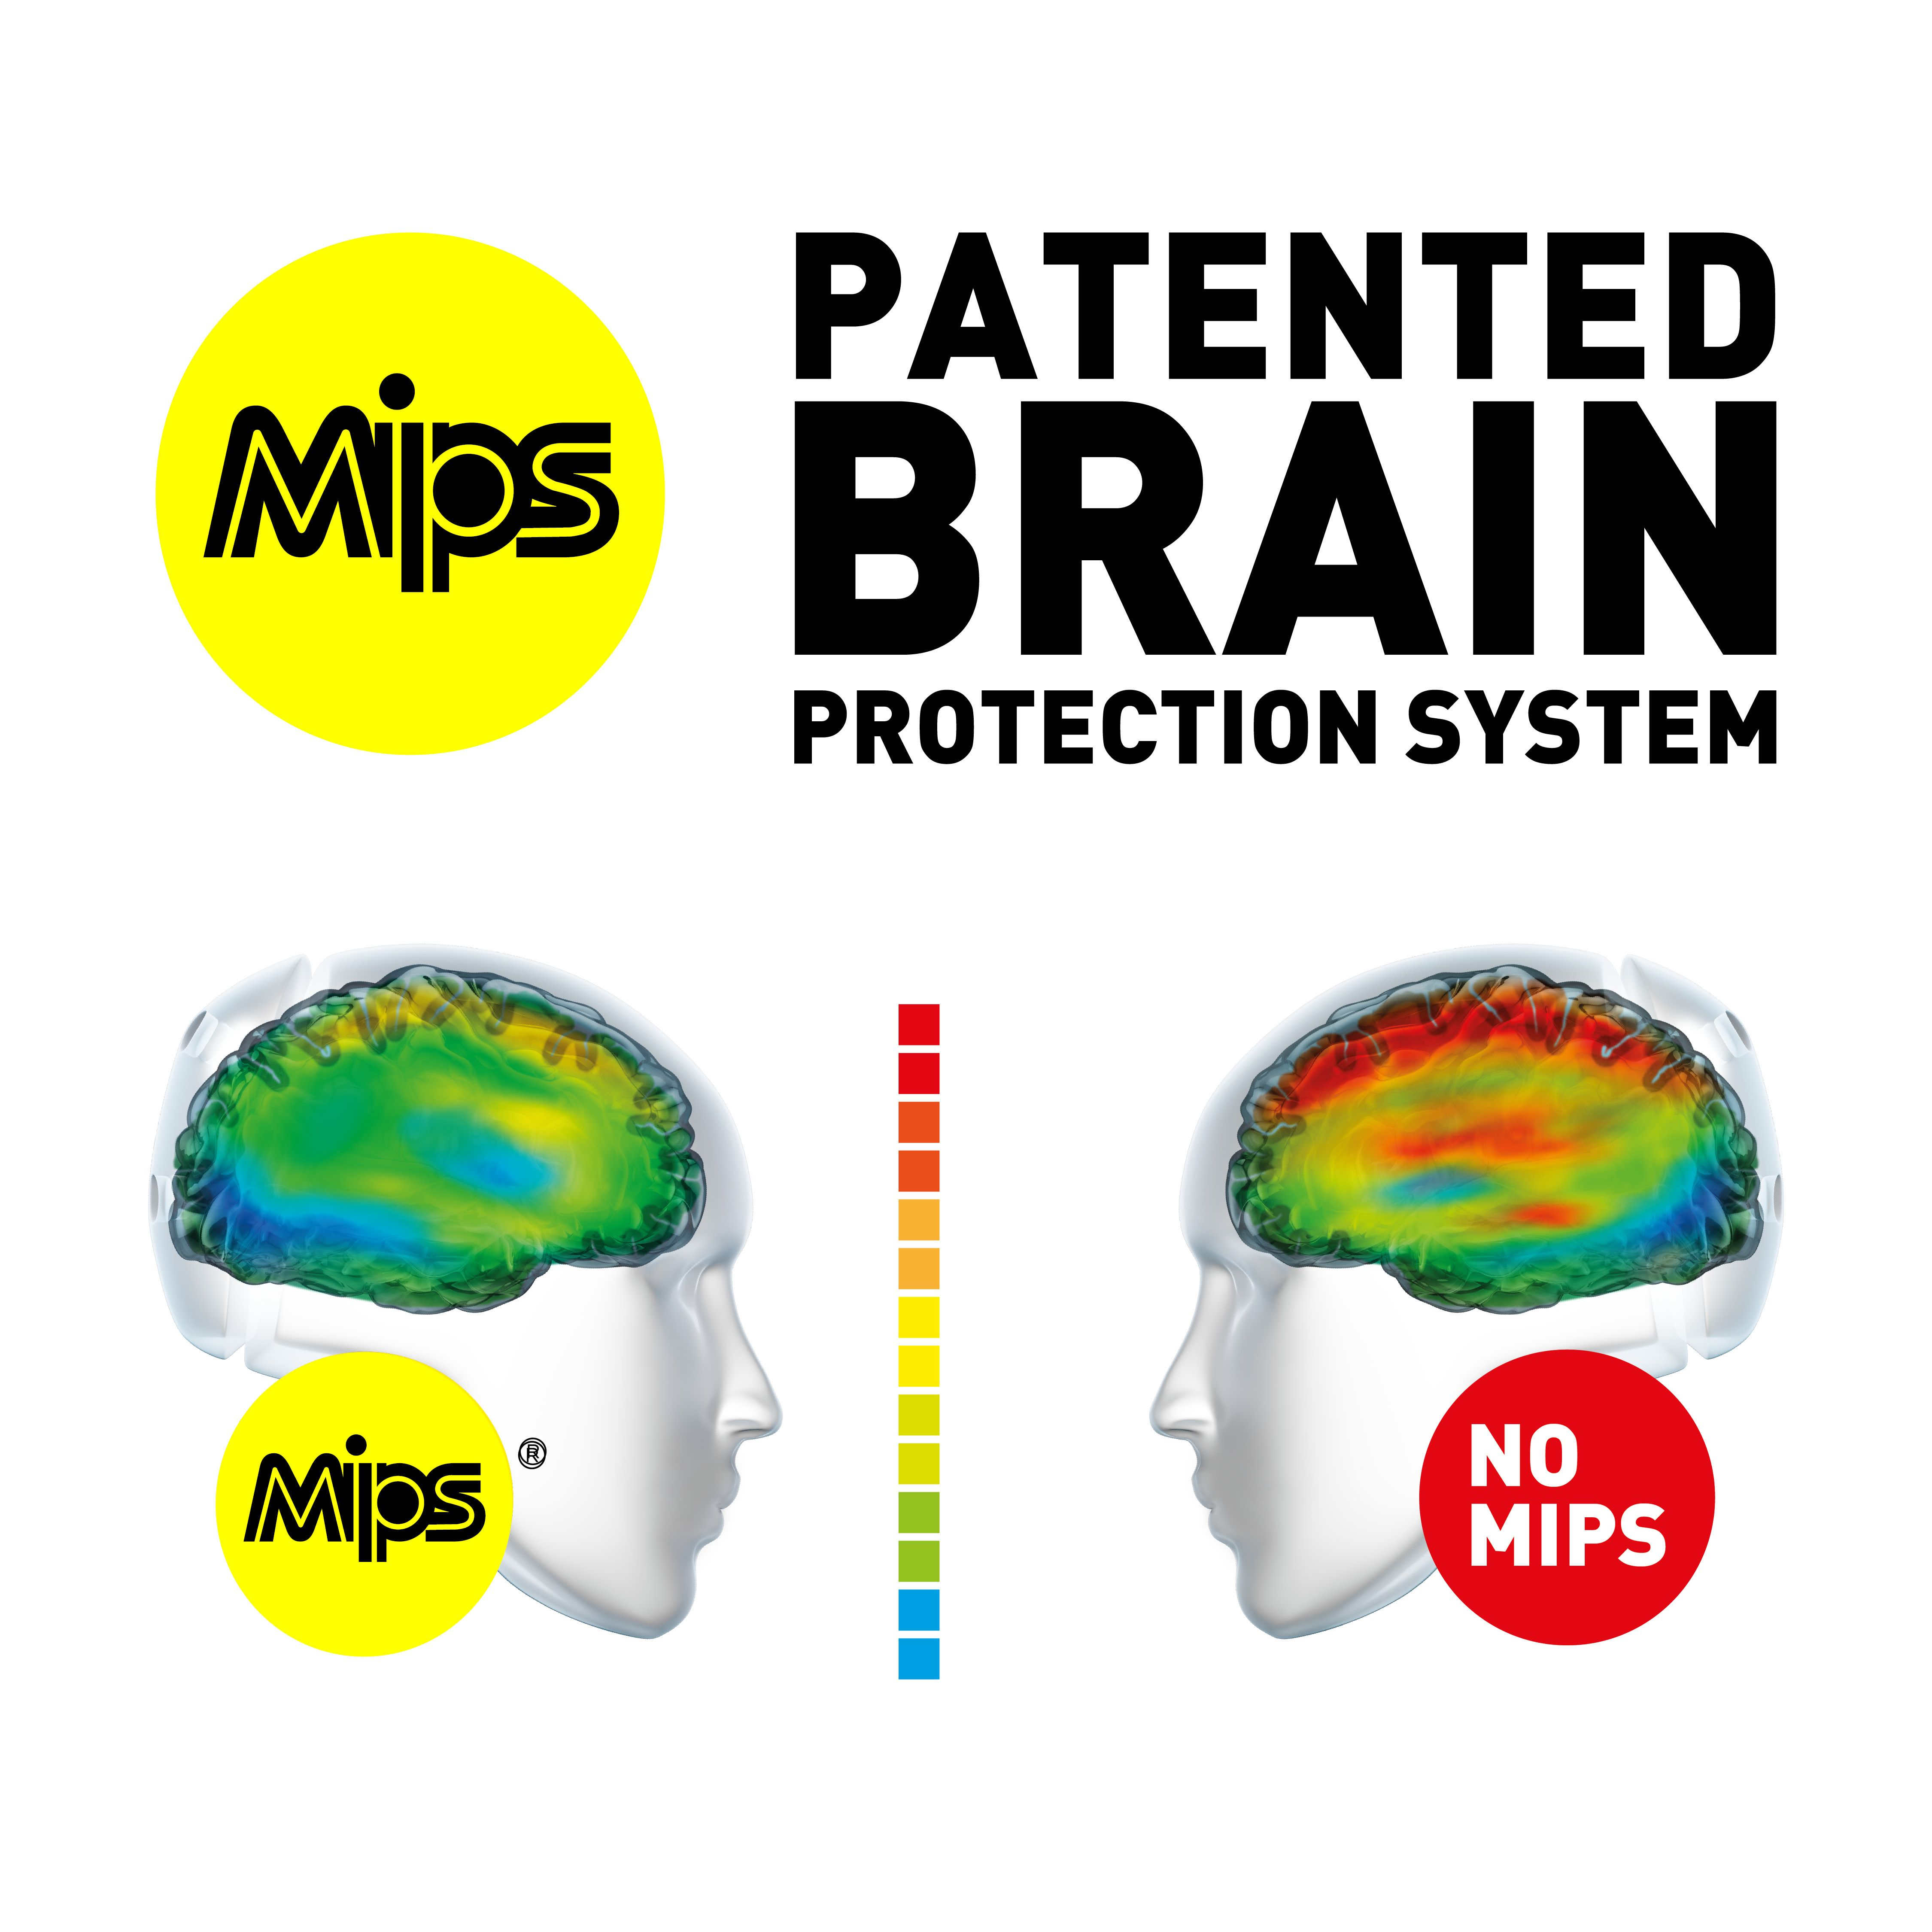 patented brain protection system